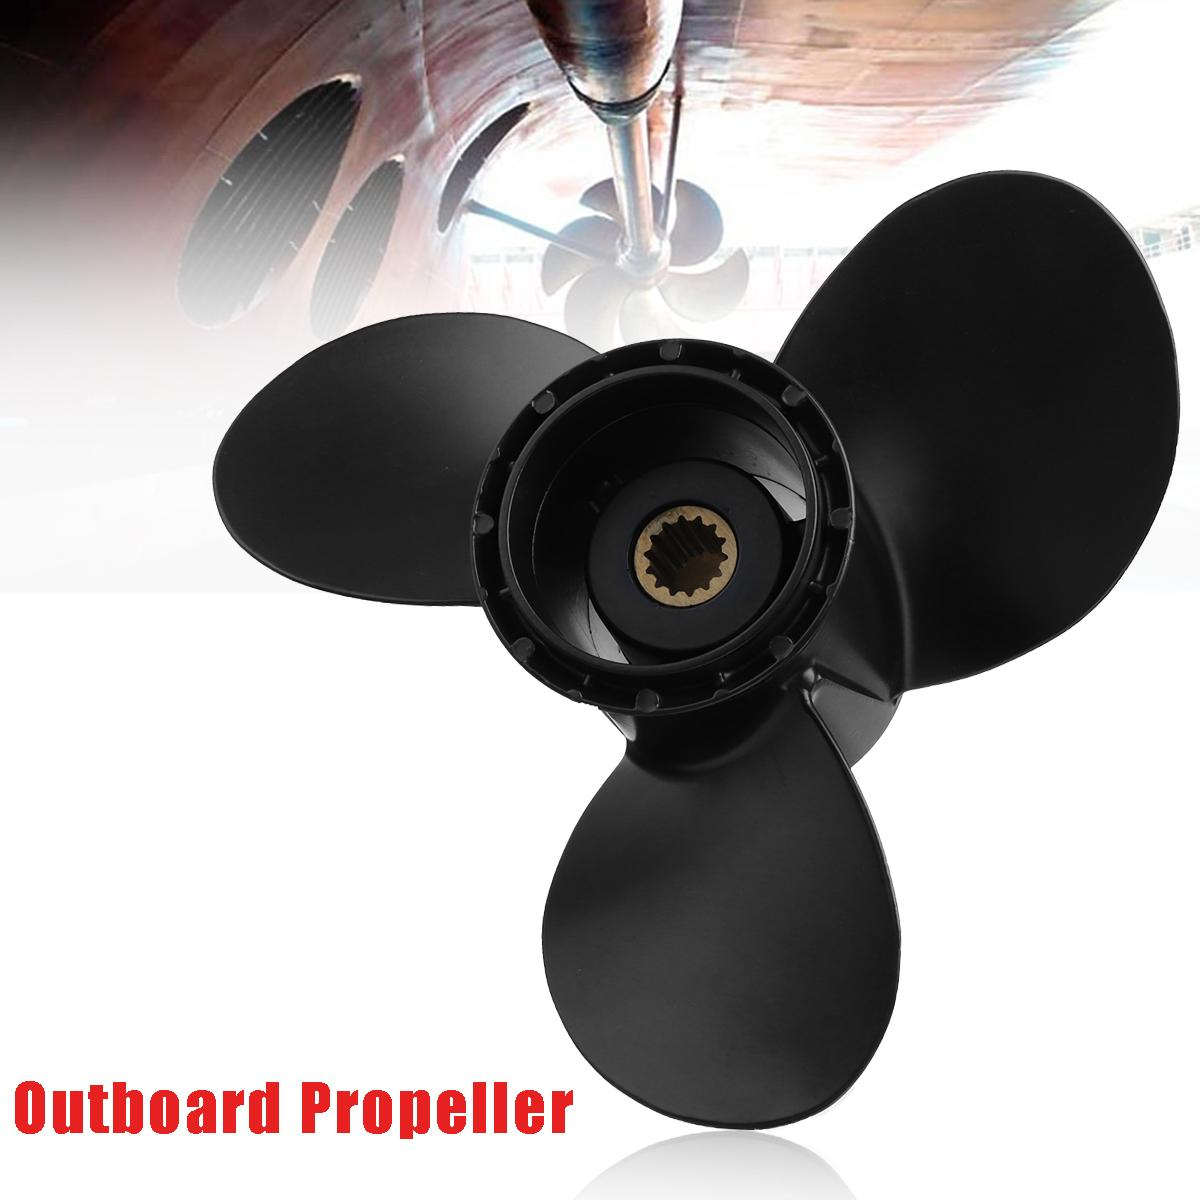 HOT SALE] 175190 10 1/2 x 11 Outboard Propeller For Johnson